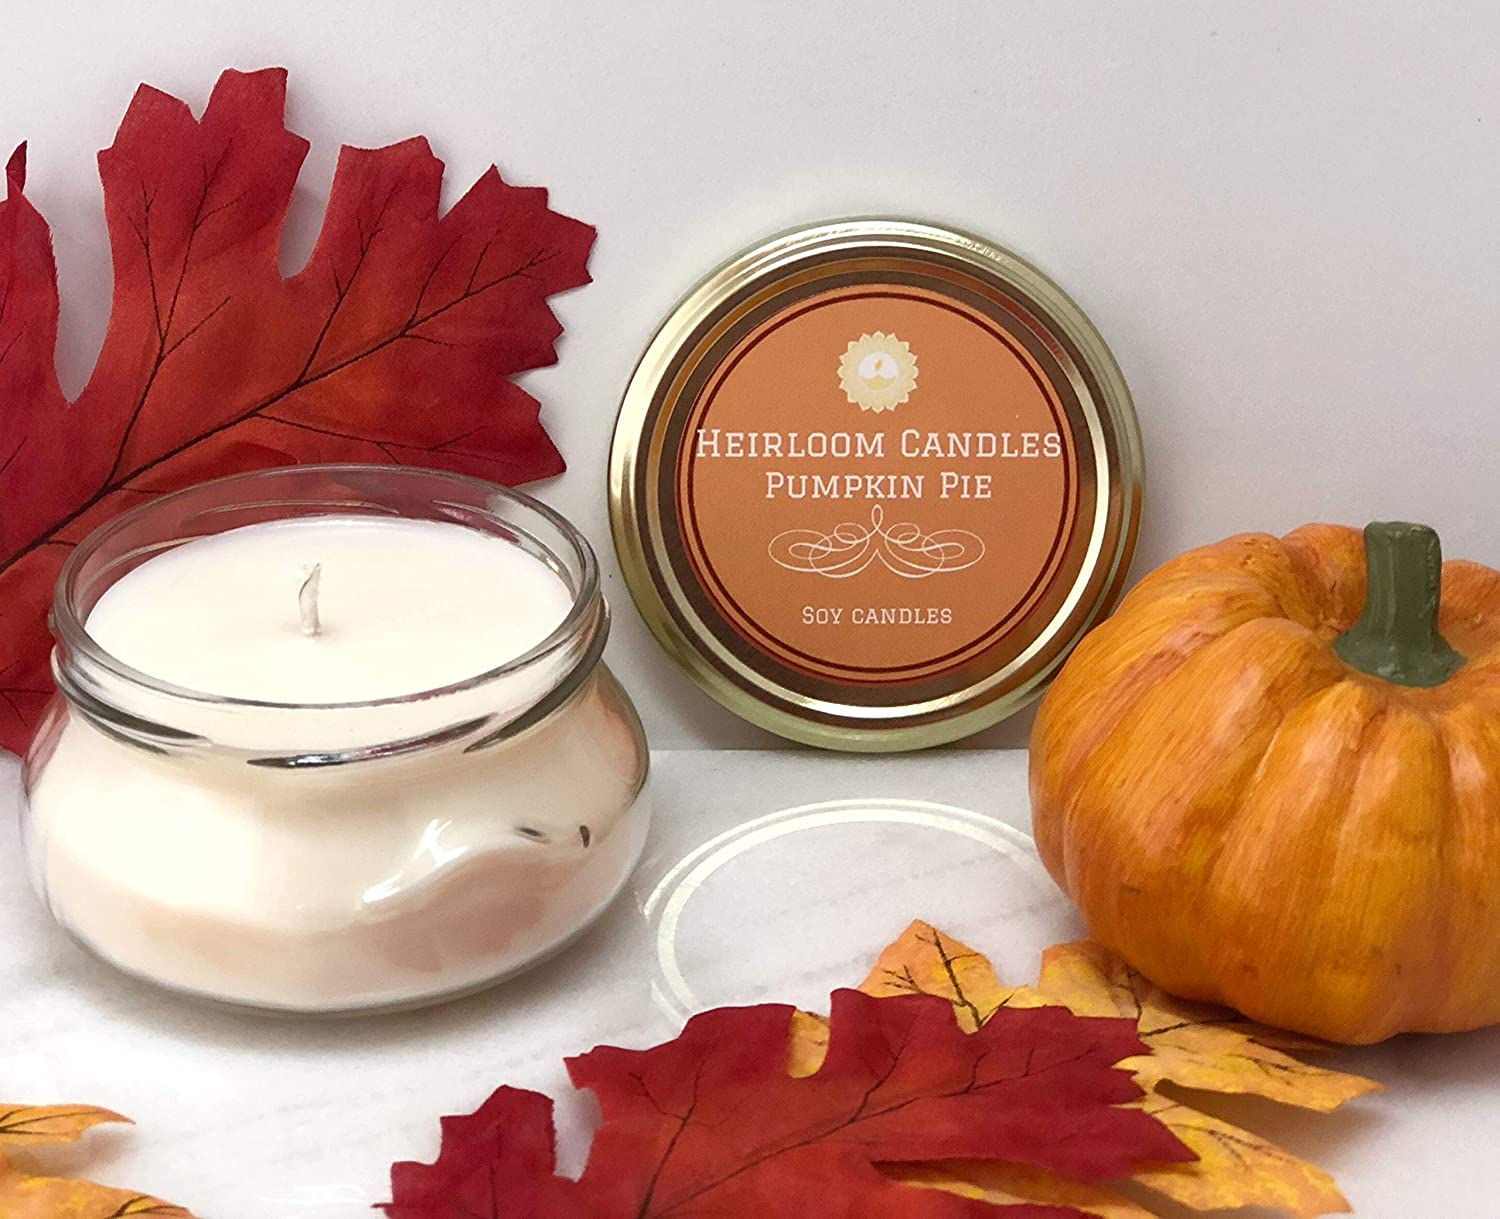 Pumpkin Pie Scented Soy Candle - Spice Candle - Handmade, 6oz